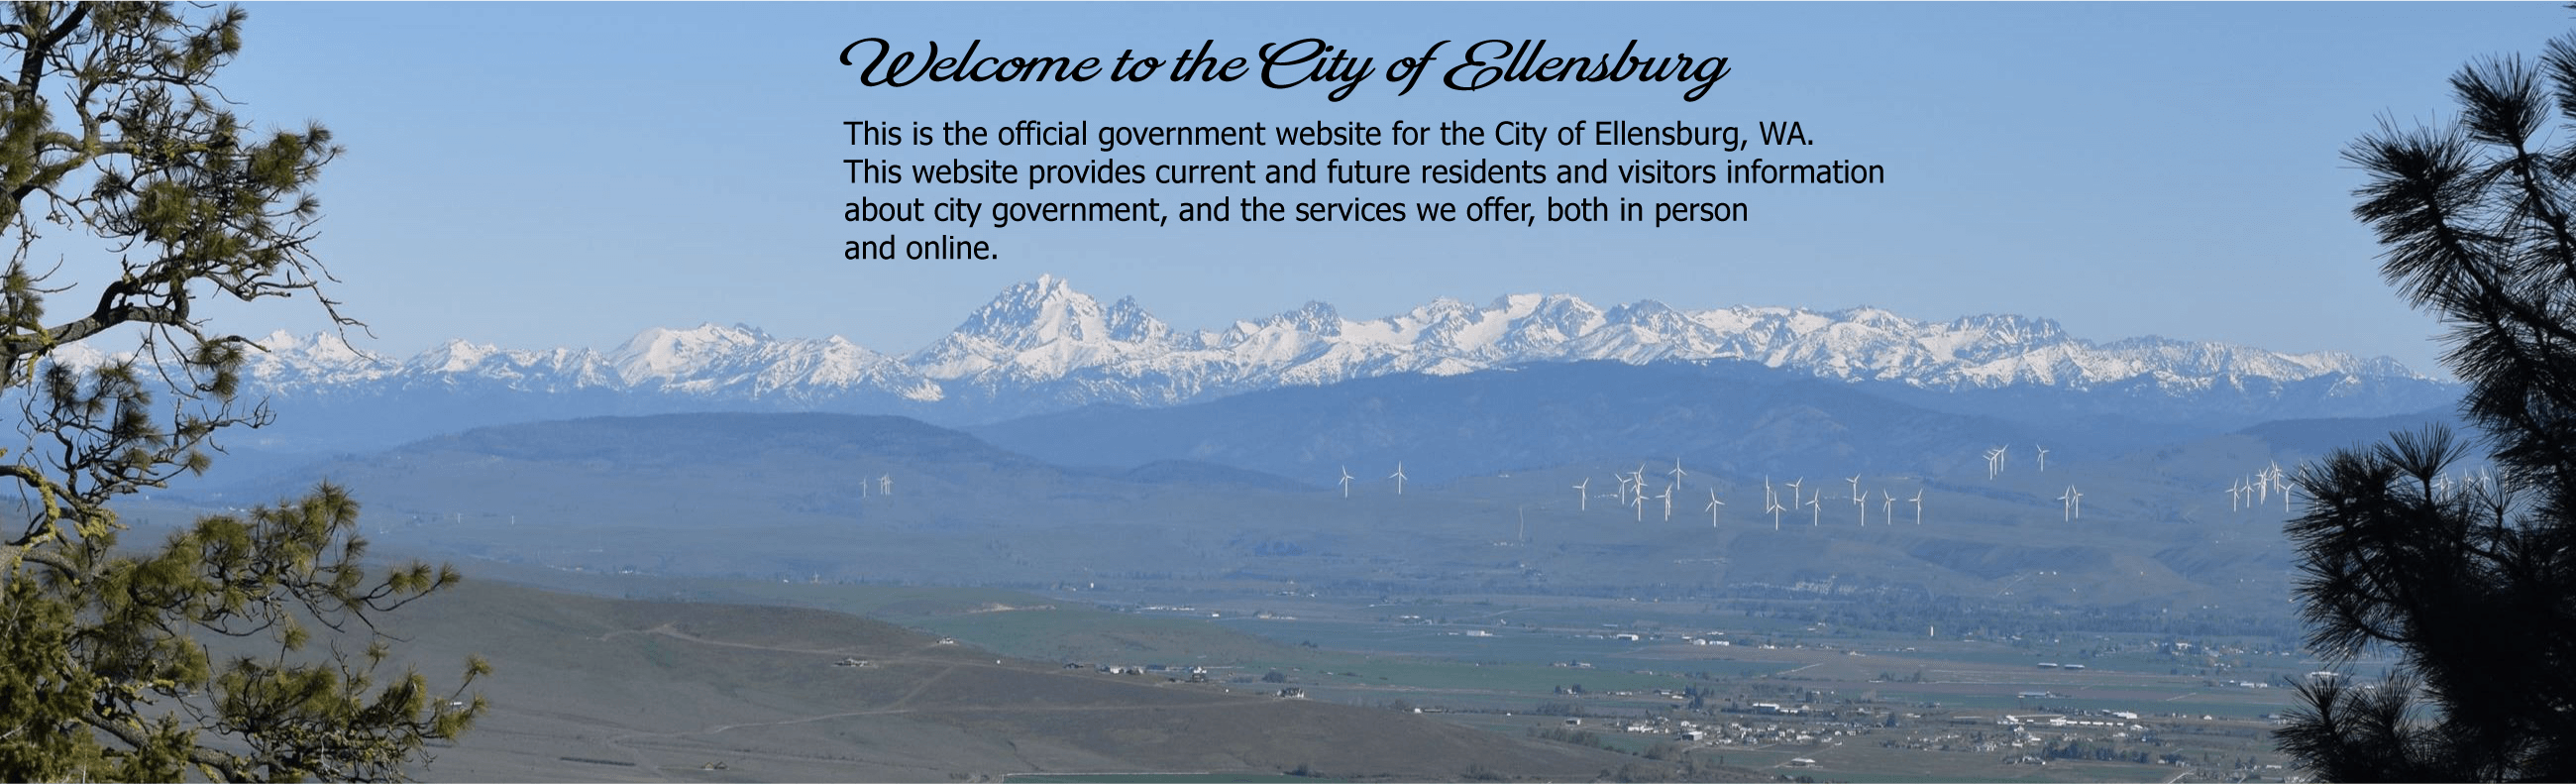 View of Ellensburg